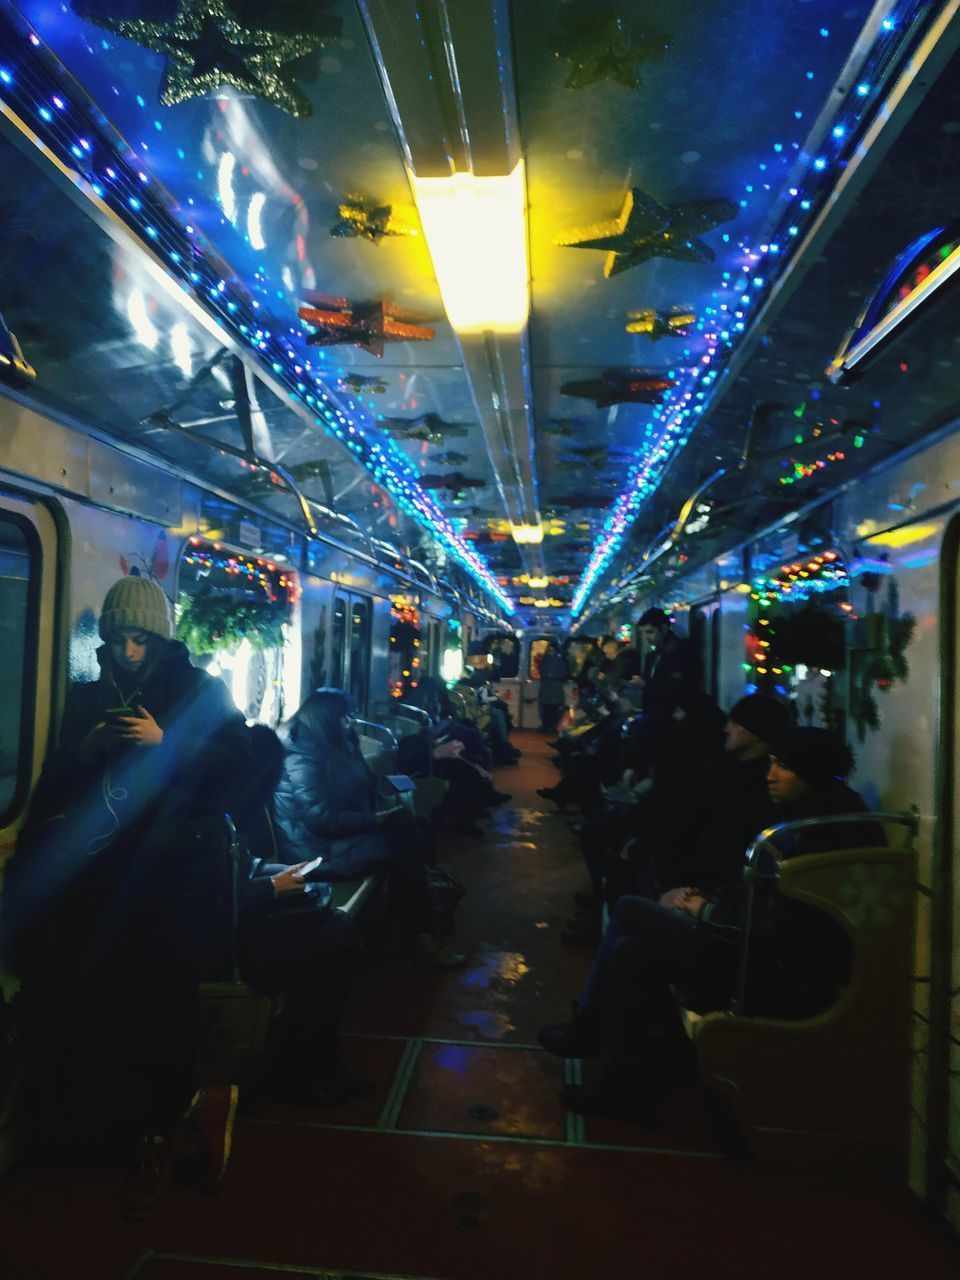 illuminated, night, lighting equipment, group of people, real people, men, architecture, city, transportation, lifestyles, motion, mode of transportation, public transportation, women, crowd, people, leisure activity, city life, adult, outdoors, light, nightlife